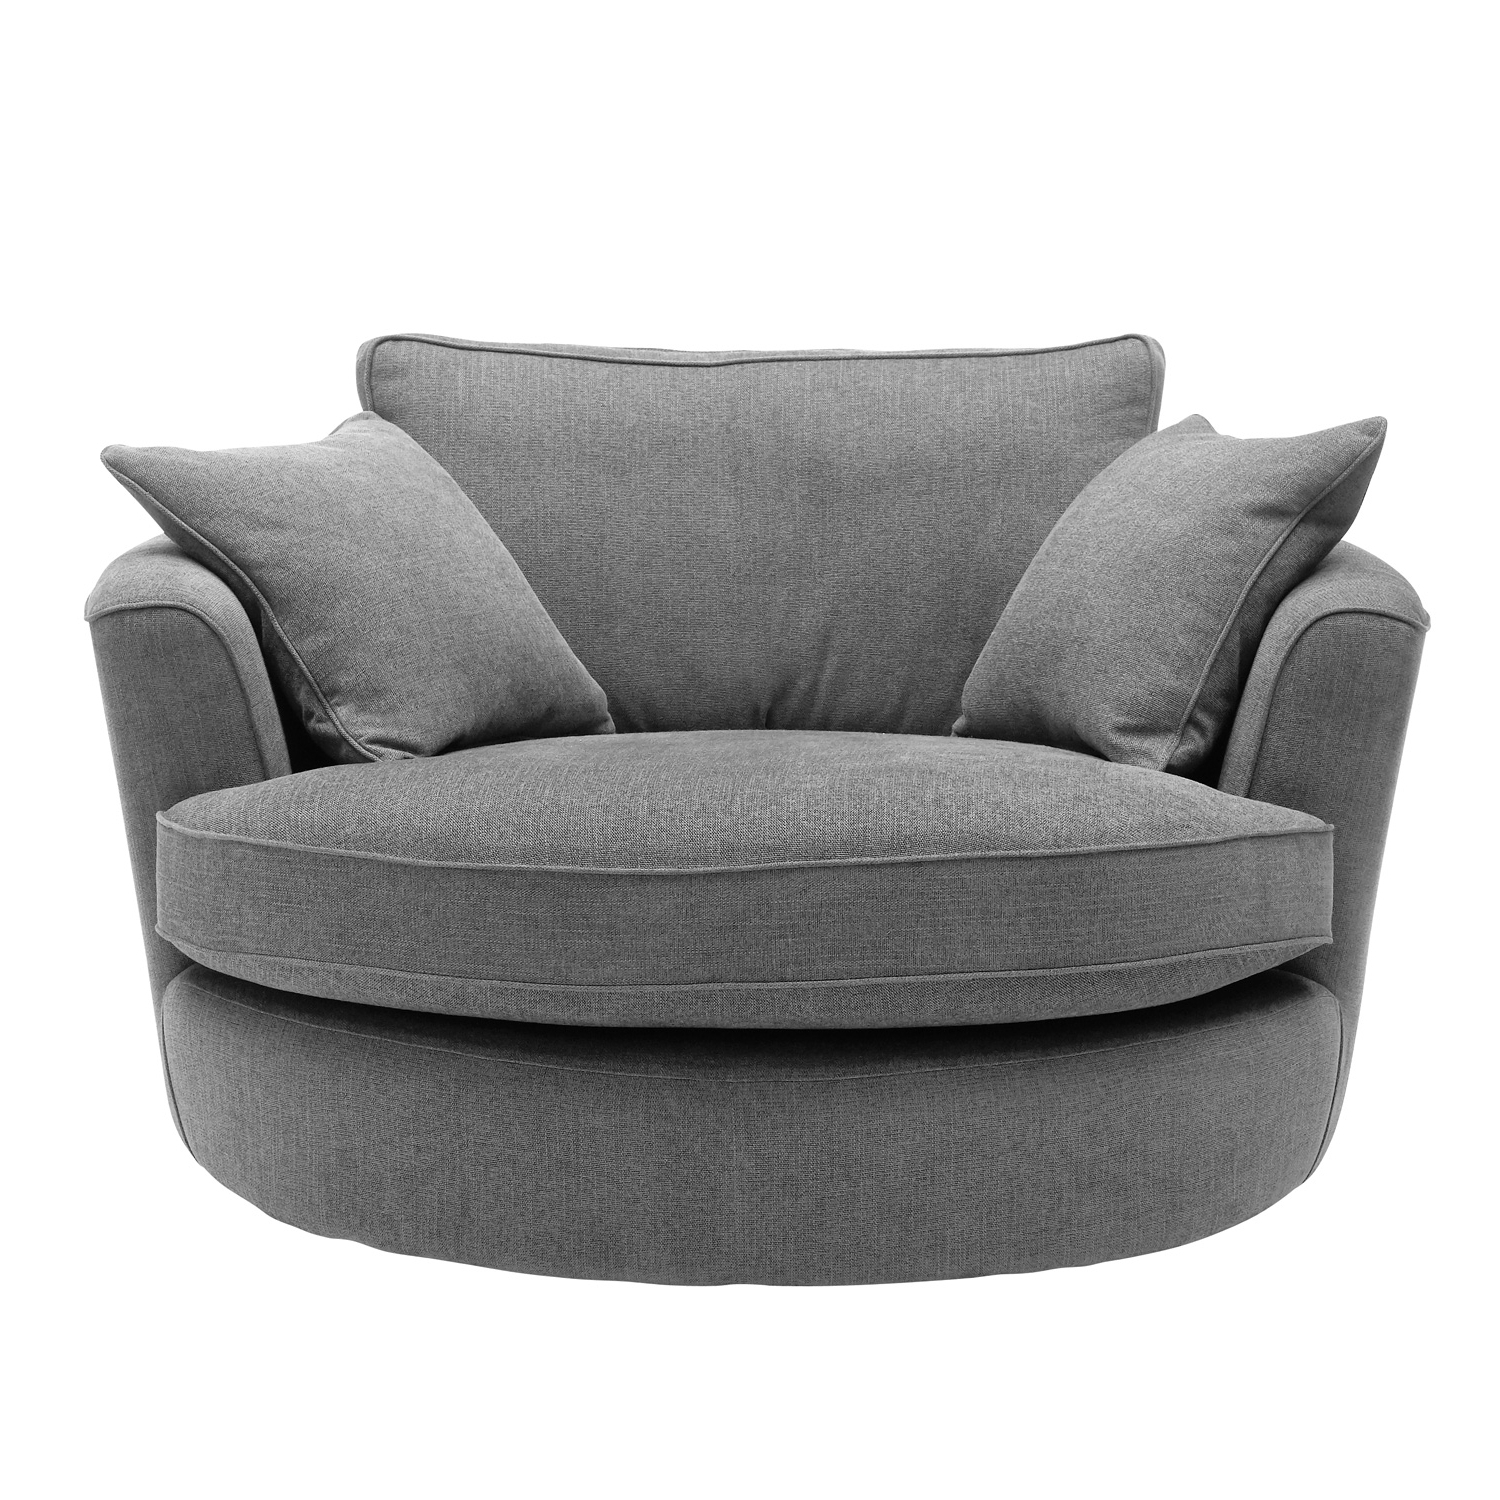 Round Sofa Chairs Regarding Newest Room Sets Gray Couch Arrangement Dark Green Velvet Round For Curved (Gallery 8 of 20)